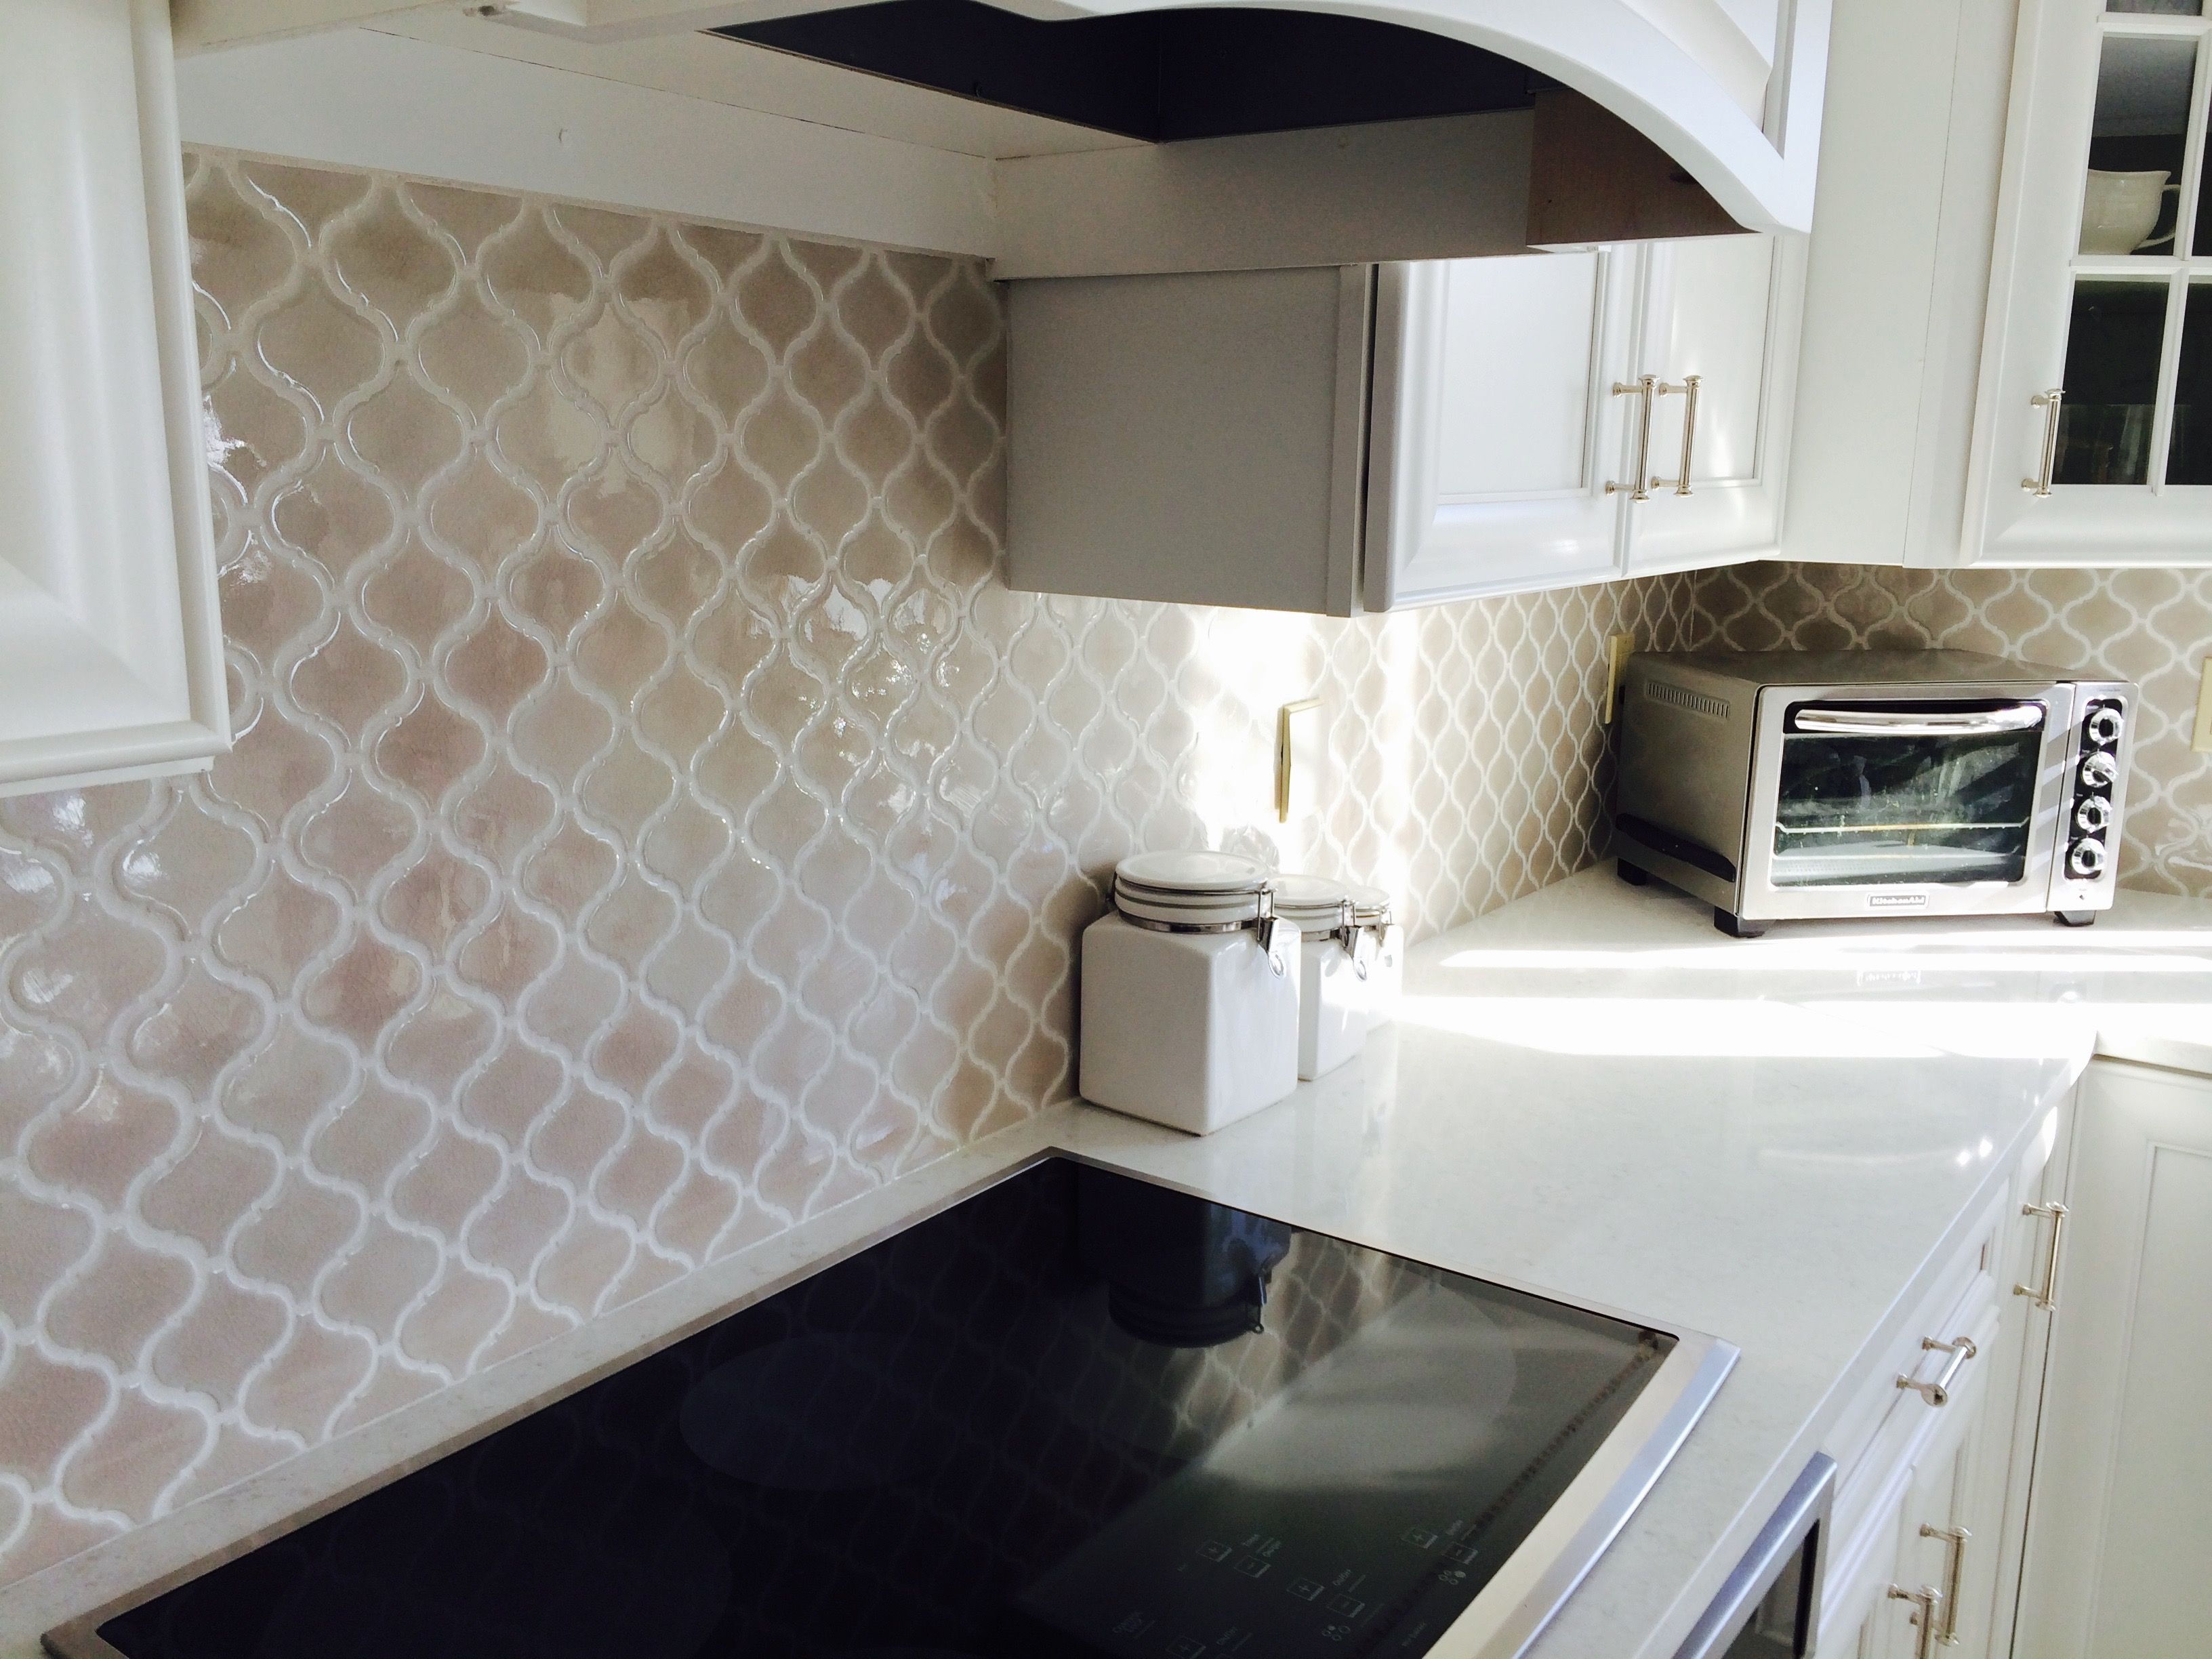 Fog Arabesque Backsplash Tile From Home Depot Herringbone